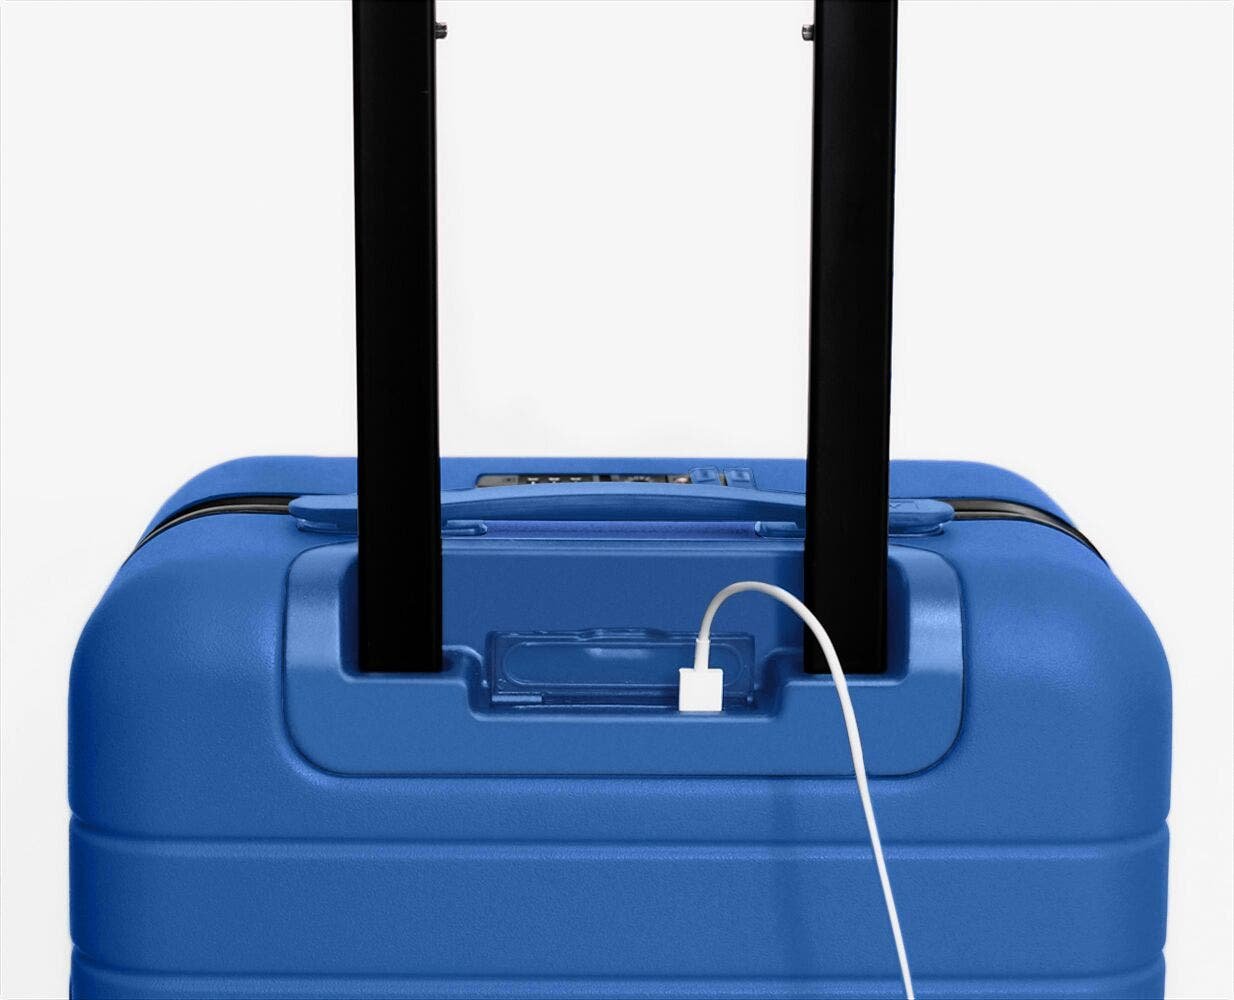 Video showing a finger pressing the battery to eject it from The Carry-On in Classic Blue